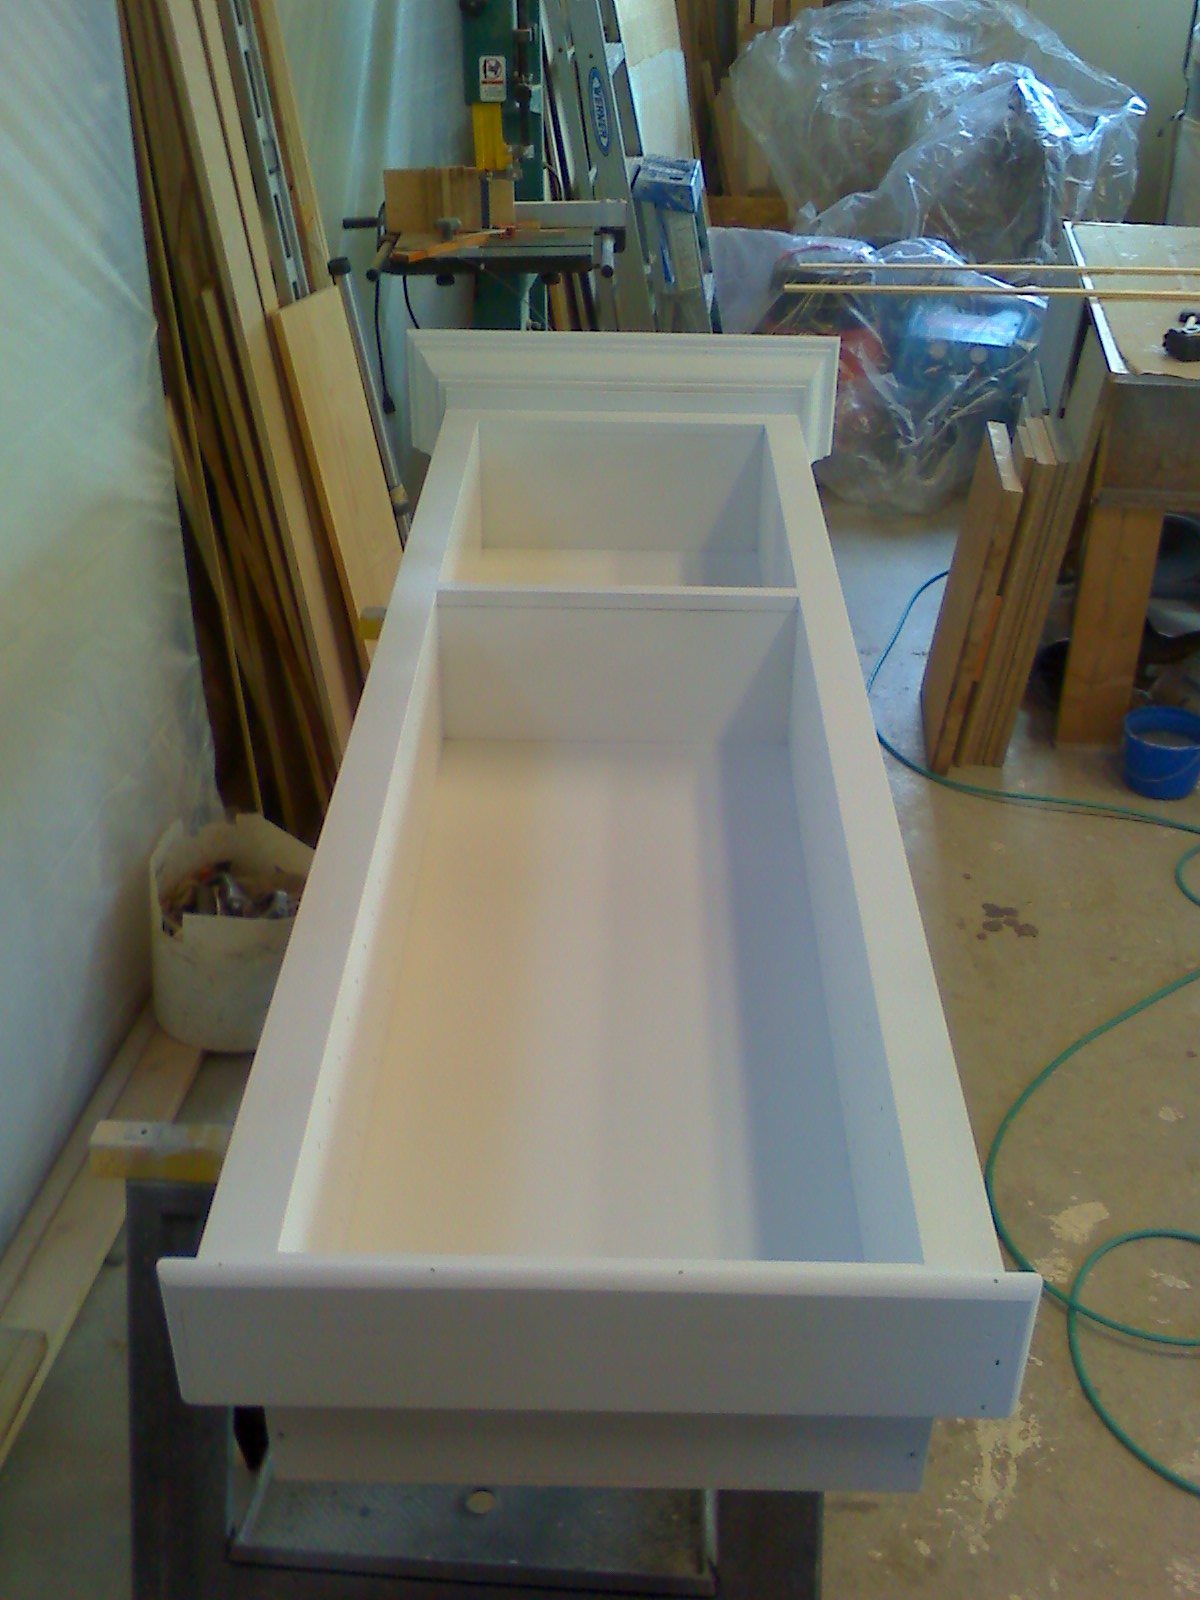 Cabinets Bathroom Cabinetry Cabinet Maker Cabinets In